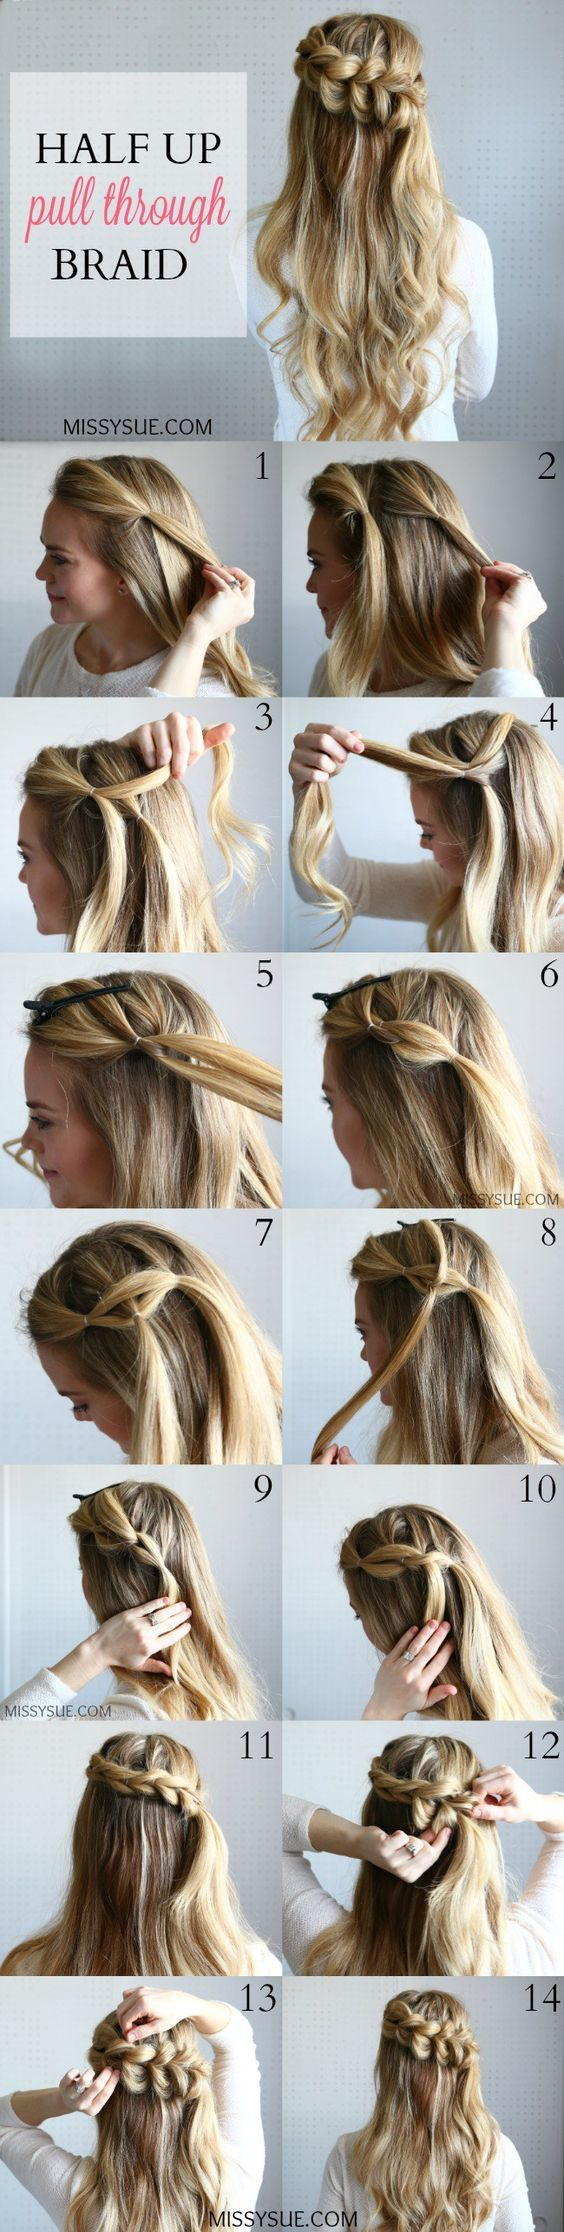 Cute and easy first date hairstyle ideas window hair style and makeup